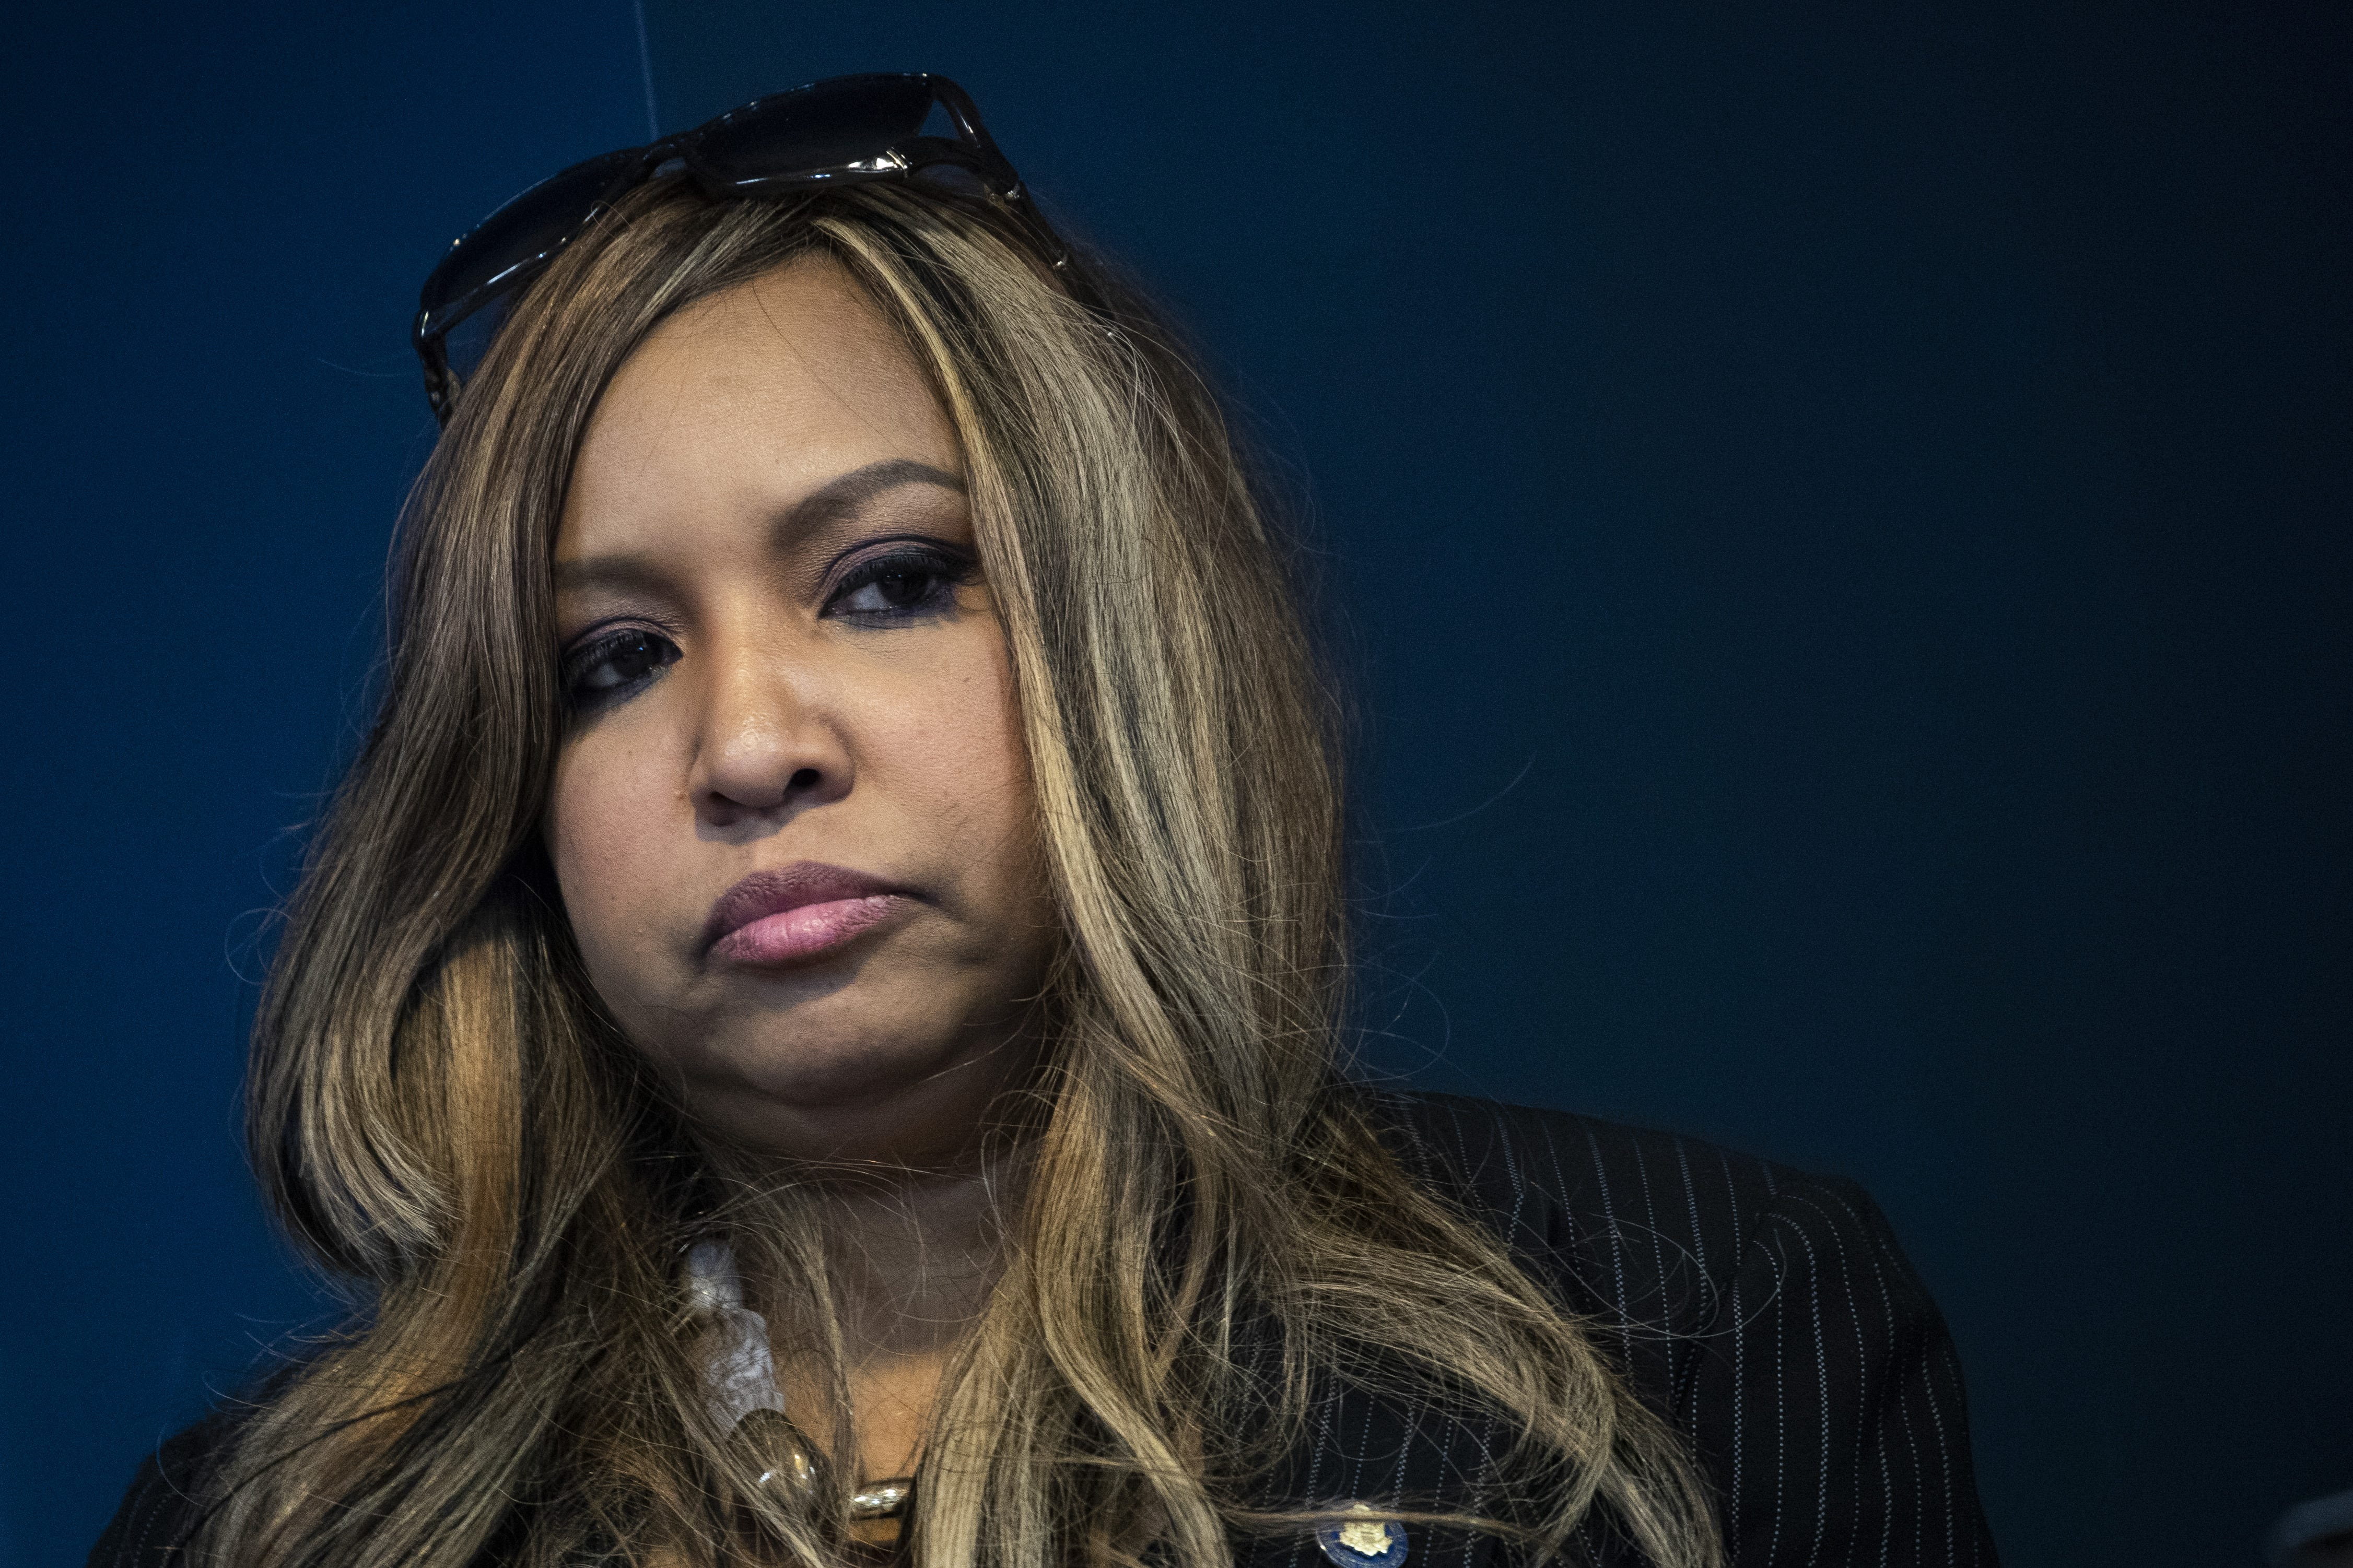 Lynne Patton pushes back at Rep. Tlaib's 'prop' label, defends appearance at Cohen hearing